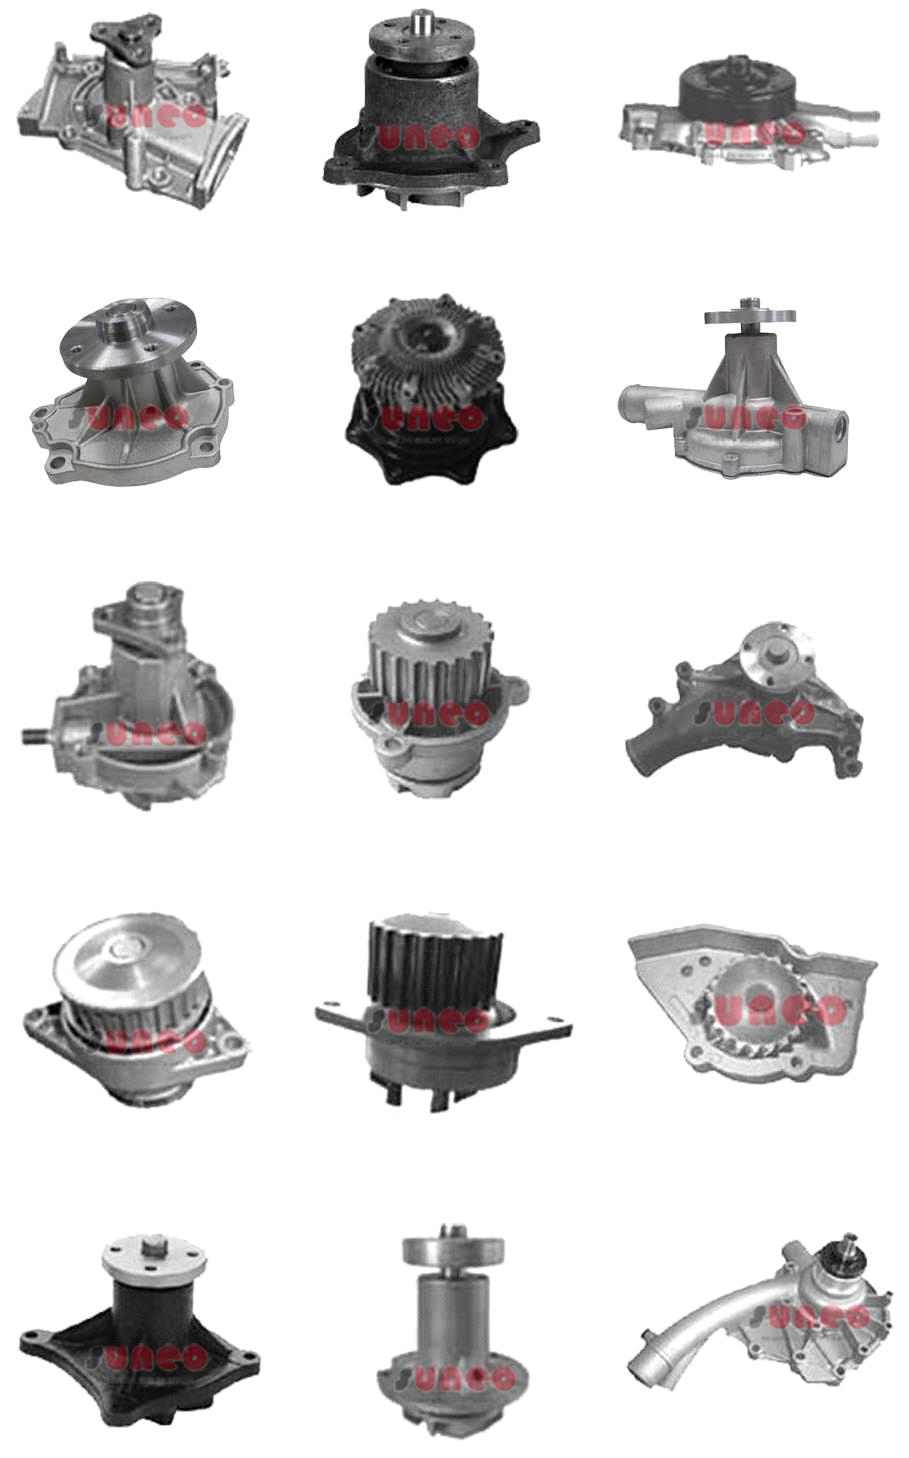 73824 Adj Camshaft Pulley New Cam Belt furthermore Bvtparts further How To Set A Land Speed Record On A 3200 Motorcycle moreover 2007 Suzuki Xl7 07 36 Awd furthermore 140968 Where Is Crankshaft Position Sensor. on camshaft parts